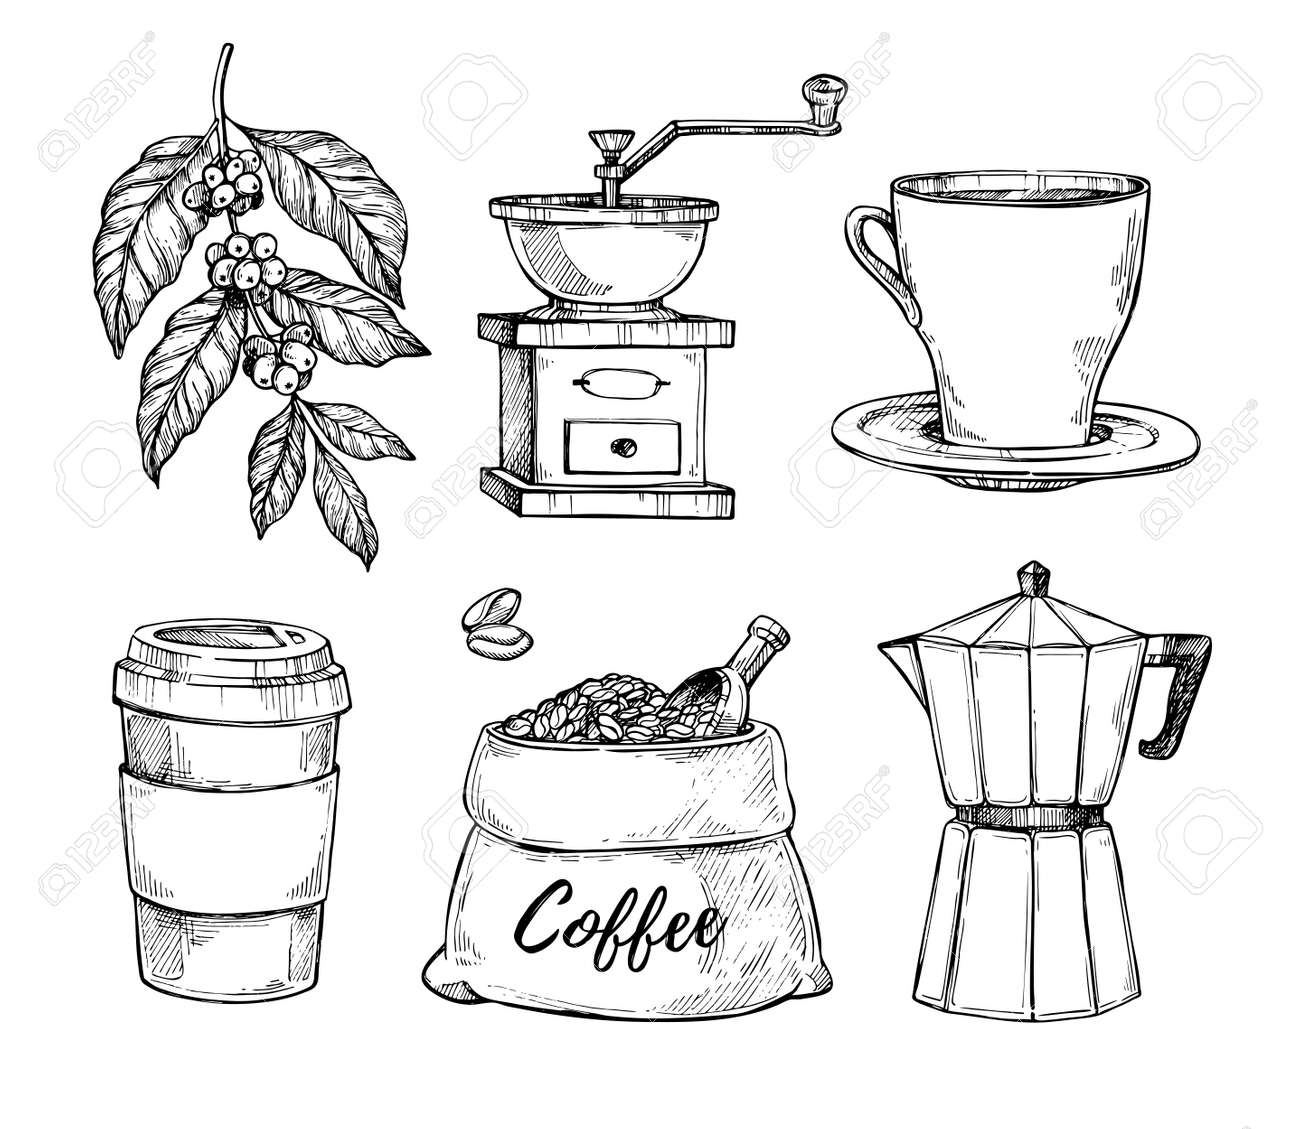 Natural grain coffee vintage hand drawn illustration set. Cup on saucer, coffee grinder, coffee beans bag, paper cup sketches isolated on white background. - 65879139